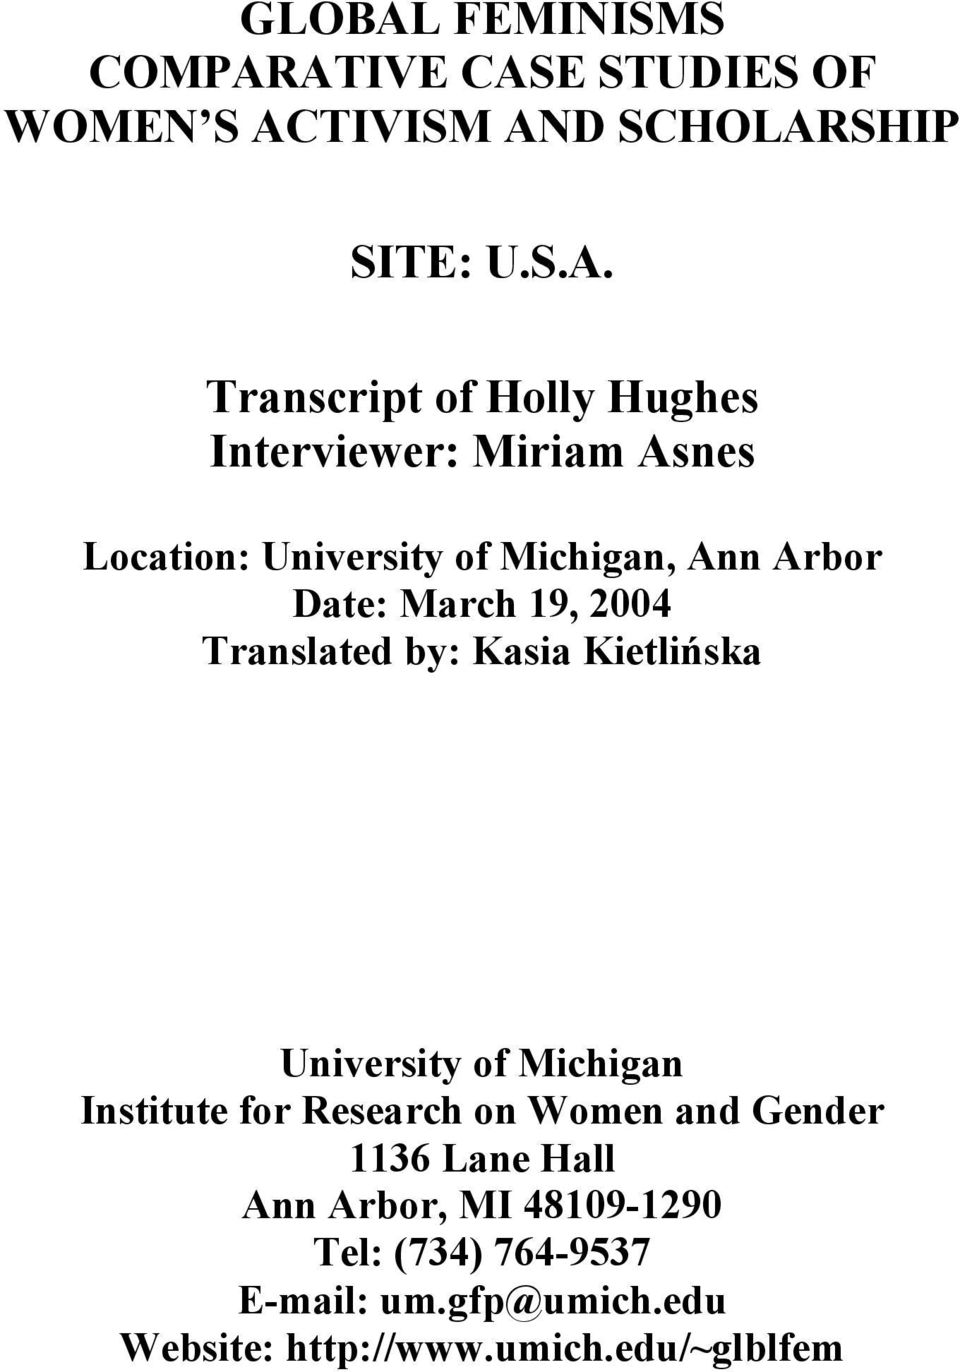 ATIVE CASE STUDIES OF WOMEN S ACTIVISM AND SCHOLARSHIP SITE: U.S.A. Transcript of Holly Hughes Interviewer: